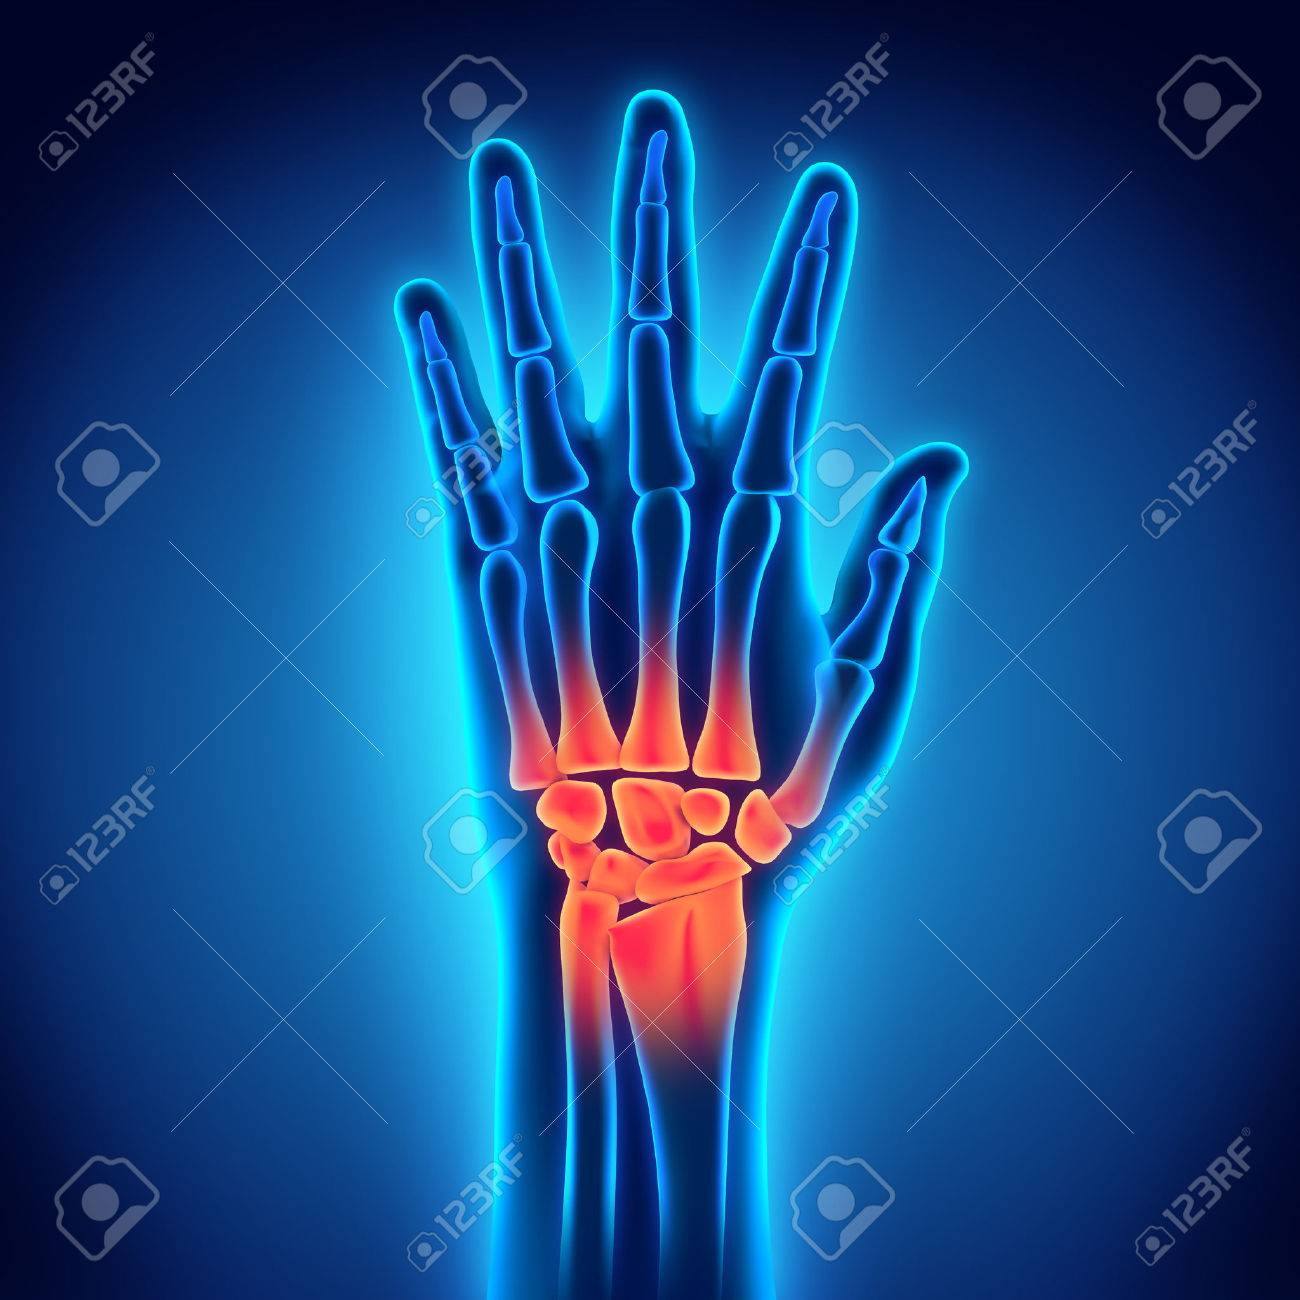 Human Hand Anatomy Illustration Stock Photo, Picture And Royalty ...